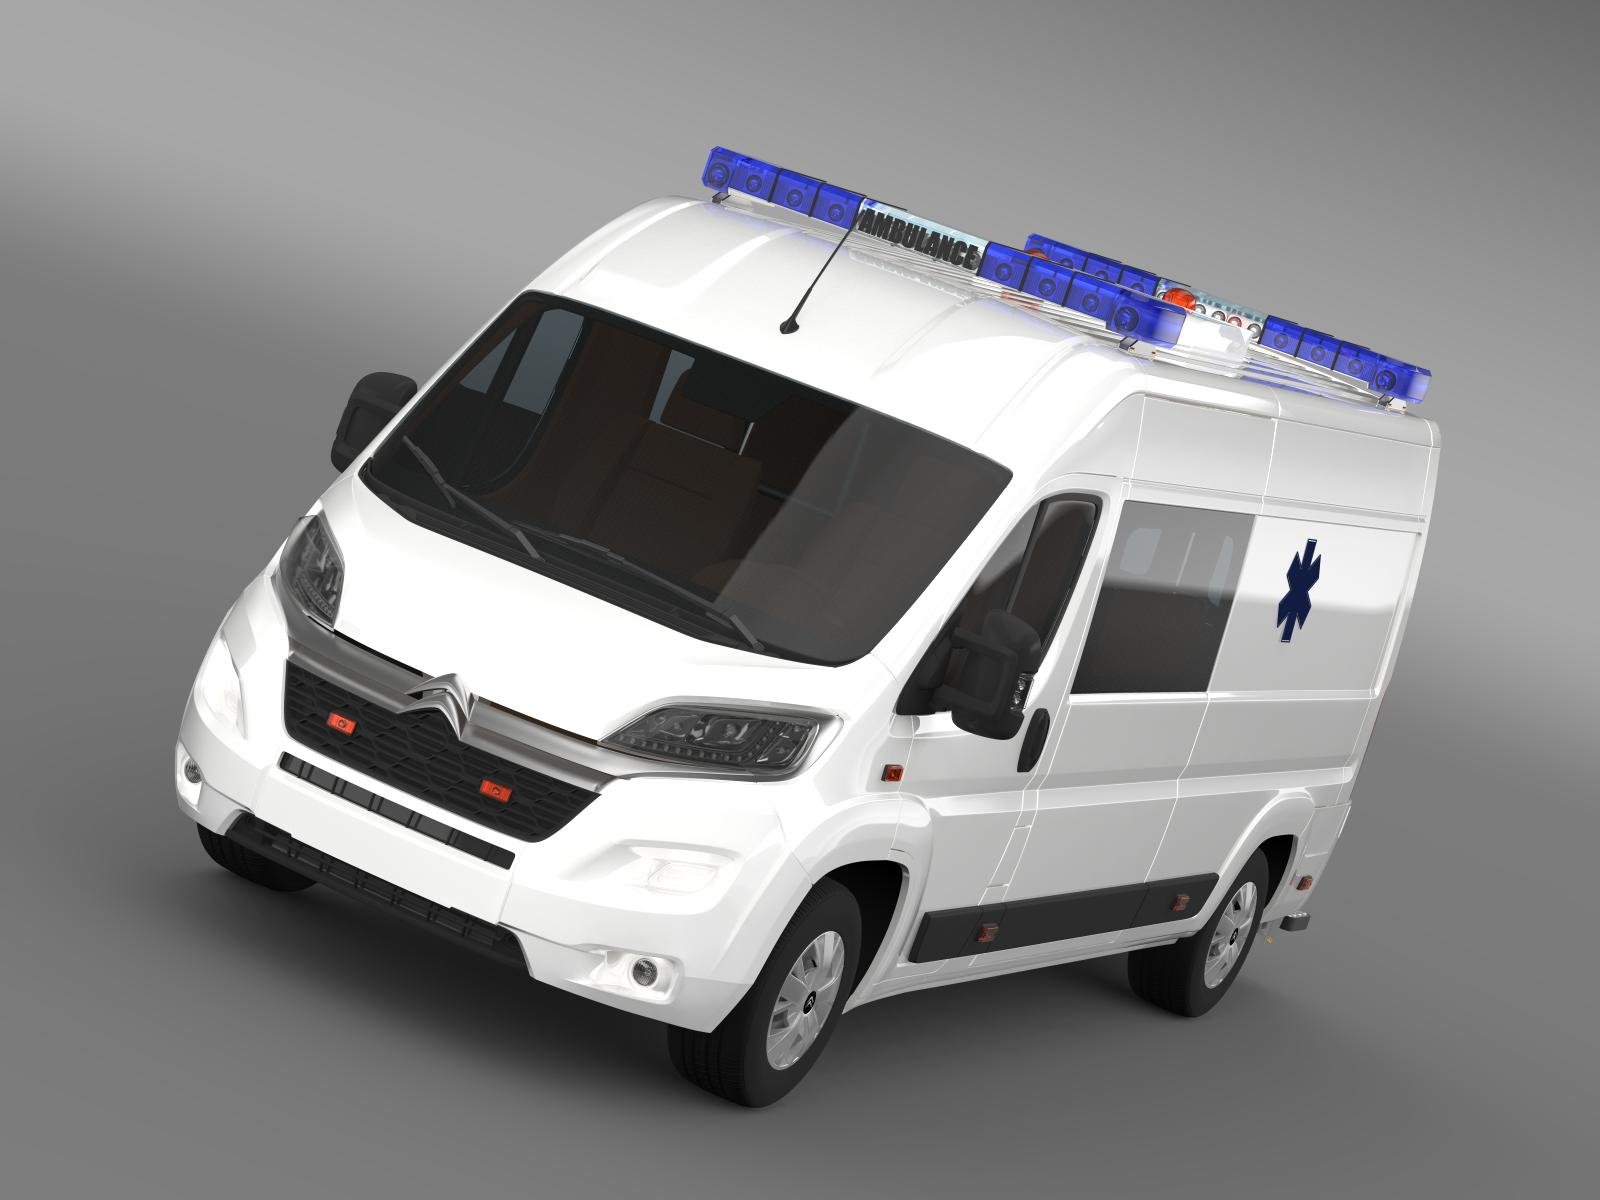 citroen jumper ambulance 2015 3d model 3ds max fbx c4d lwo ma mb hrc xsi obj 203871